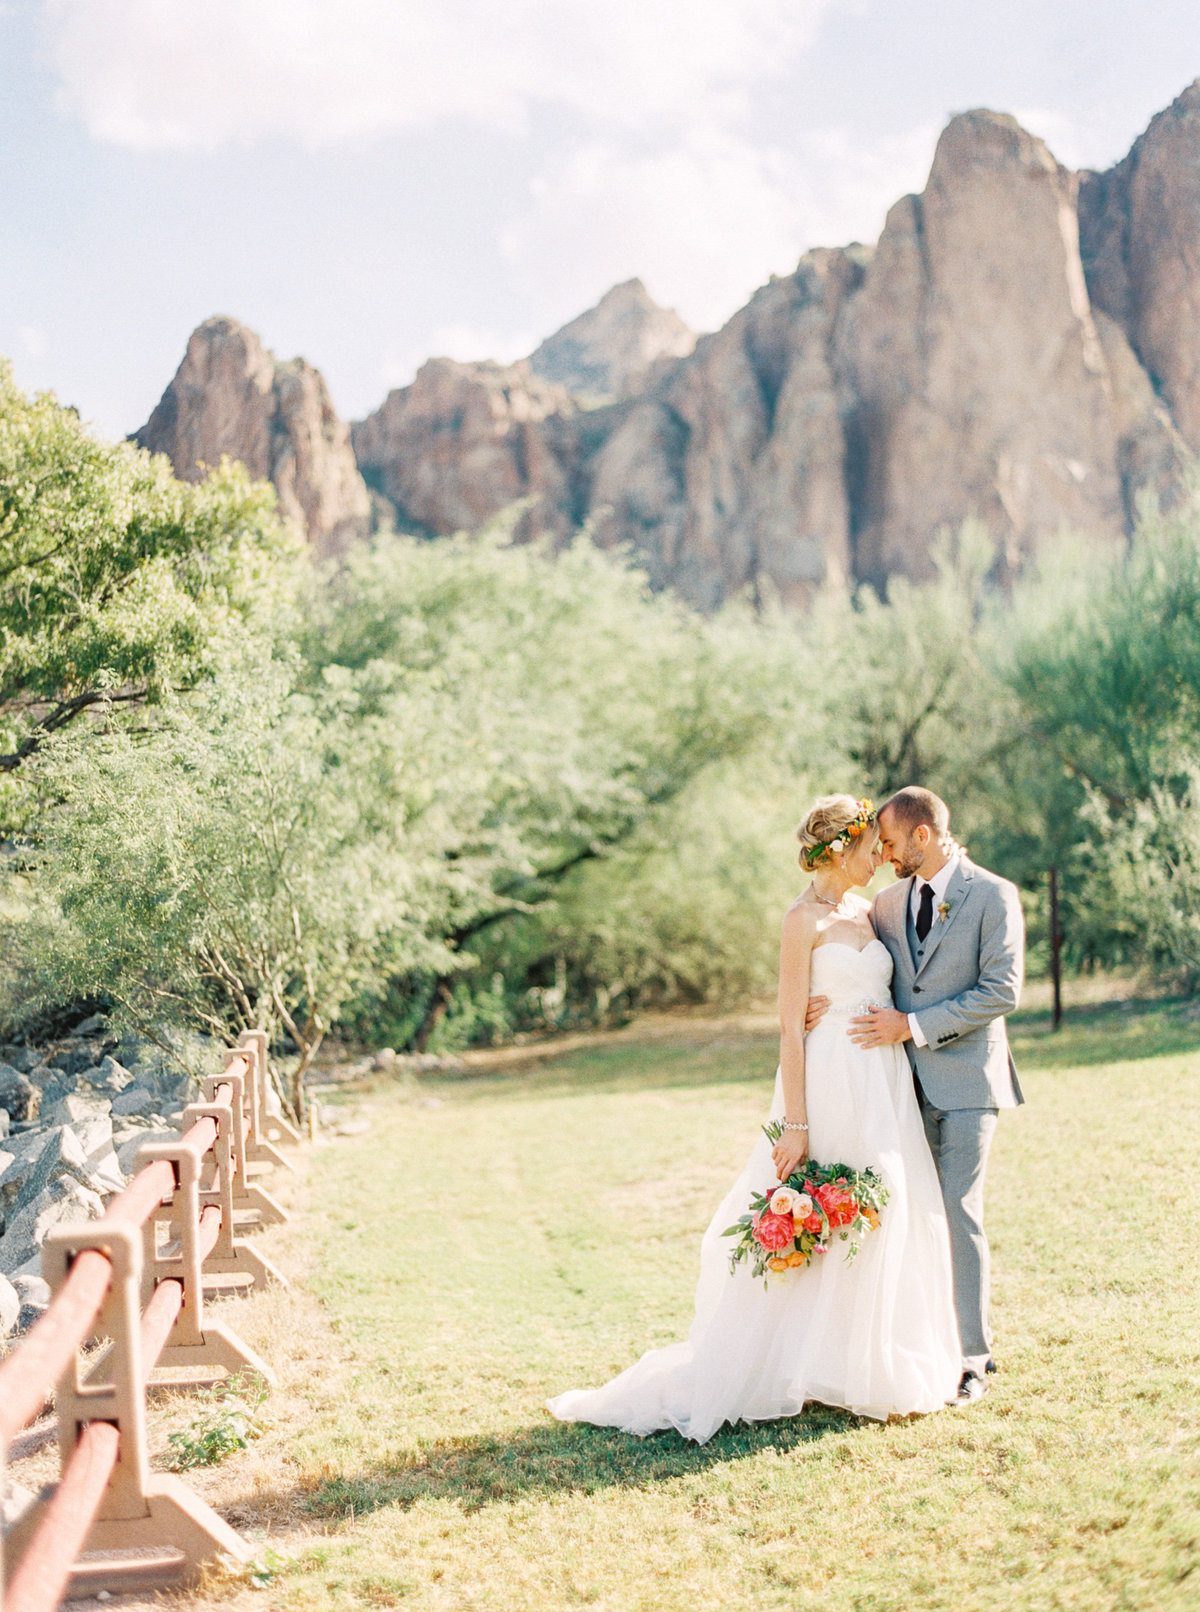 Imoni-Events-Melissa-Jill-Saguaro-Lake-Ranch-045